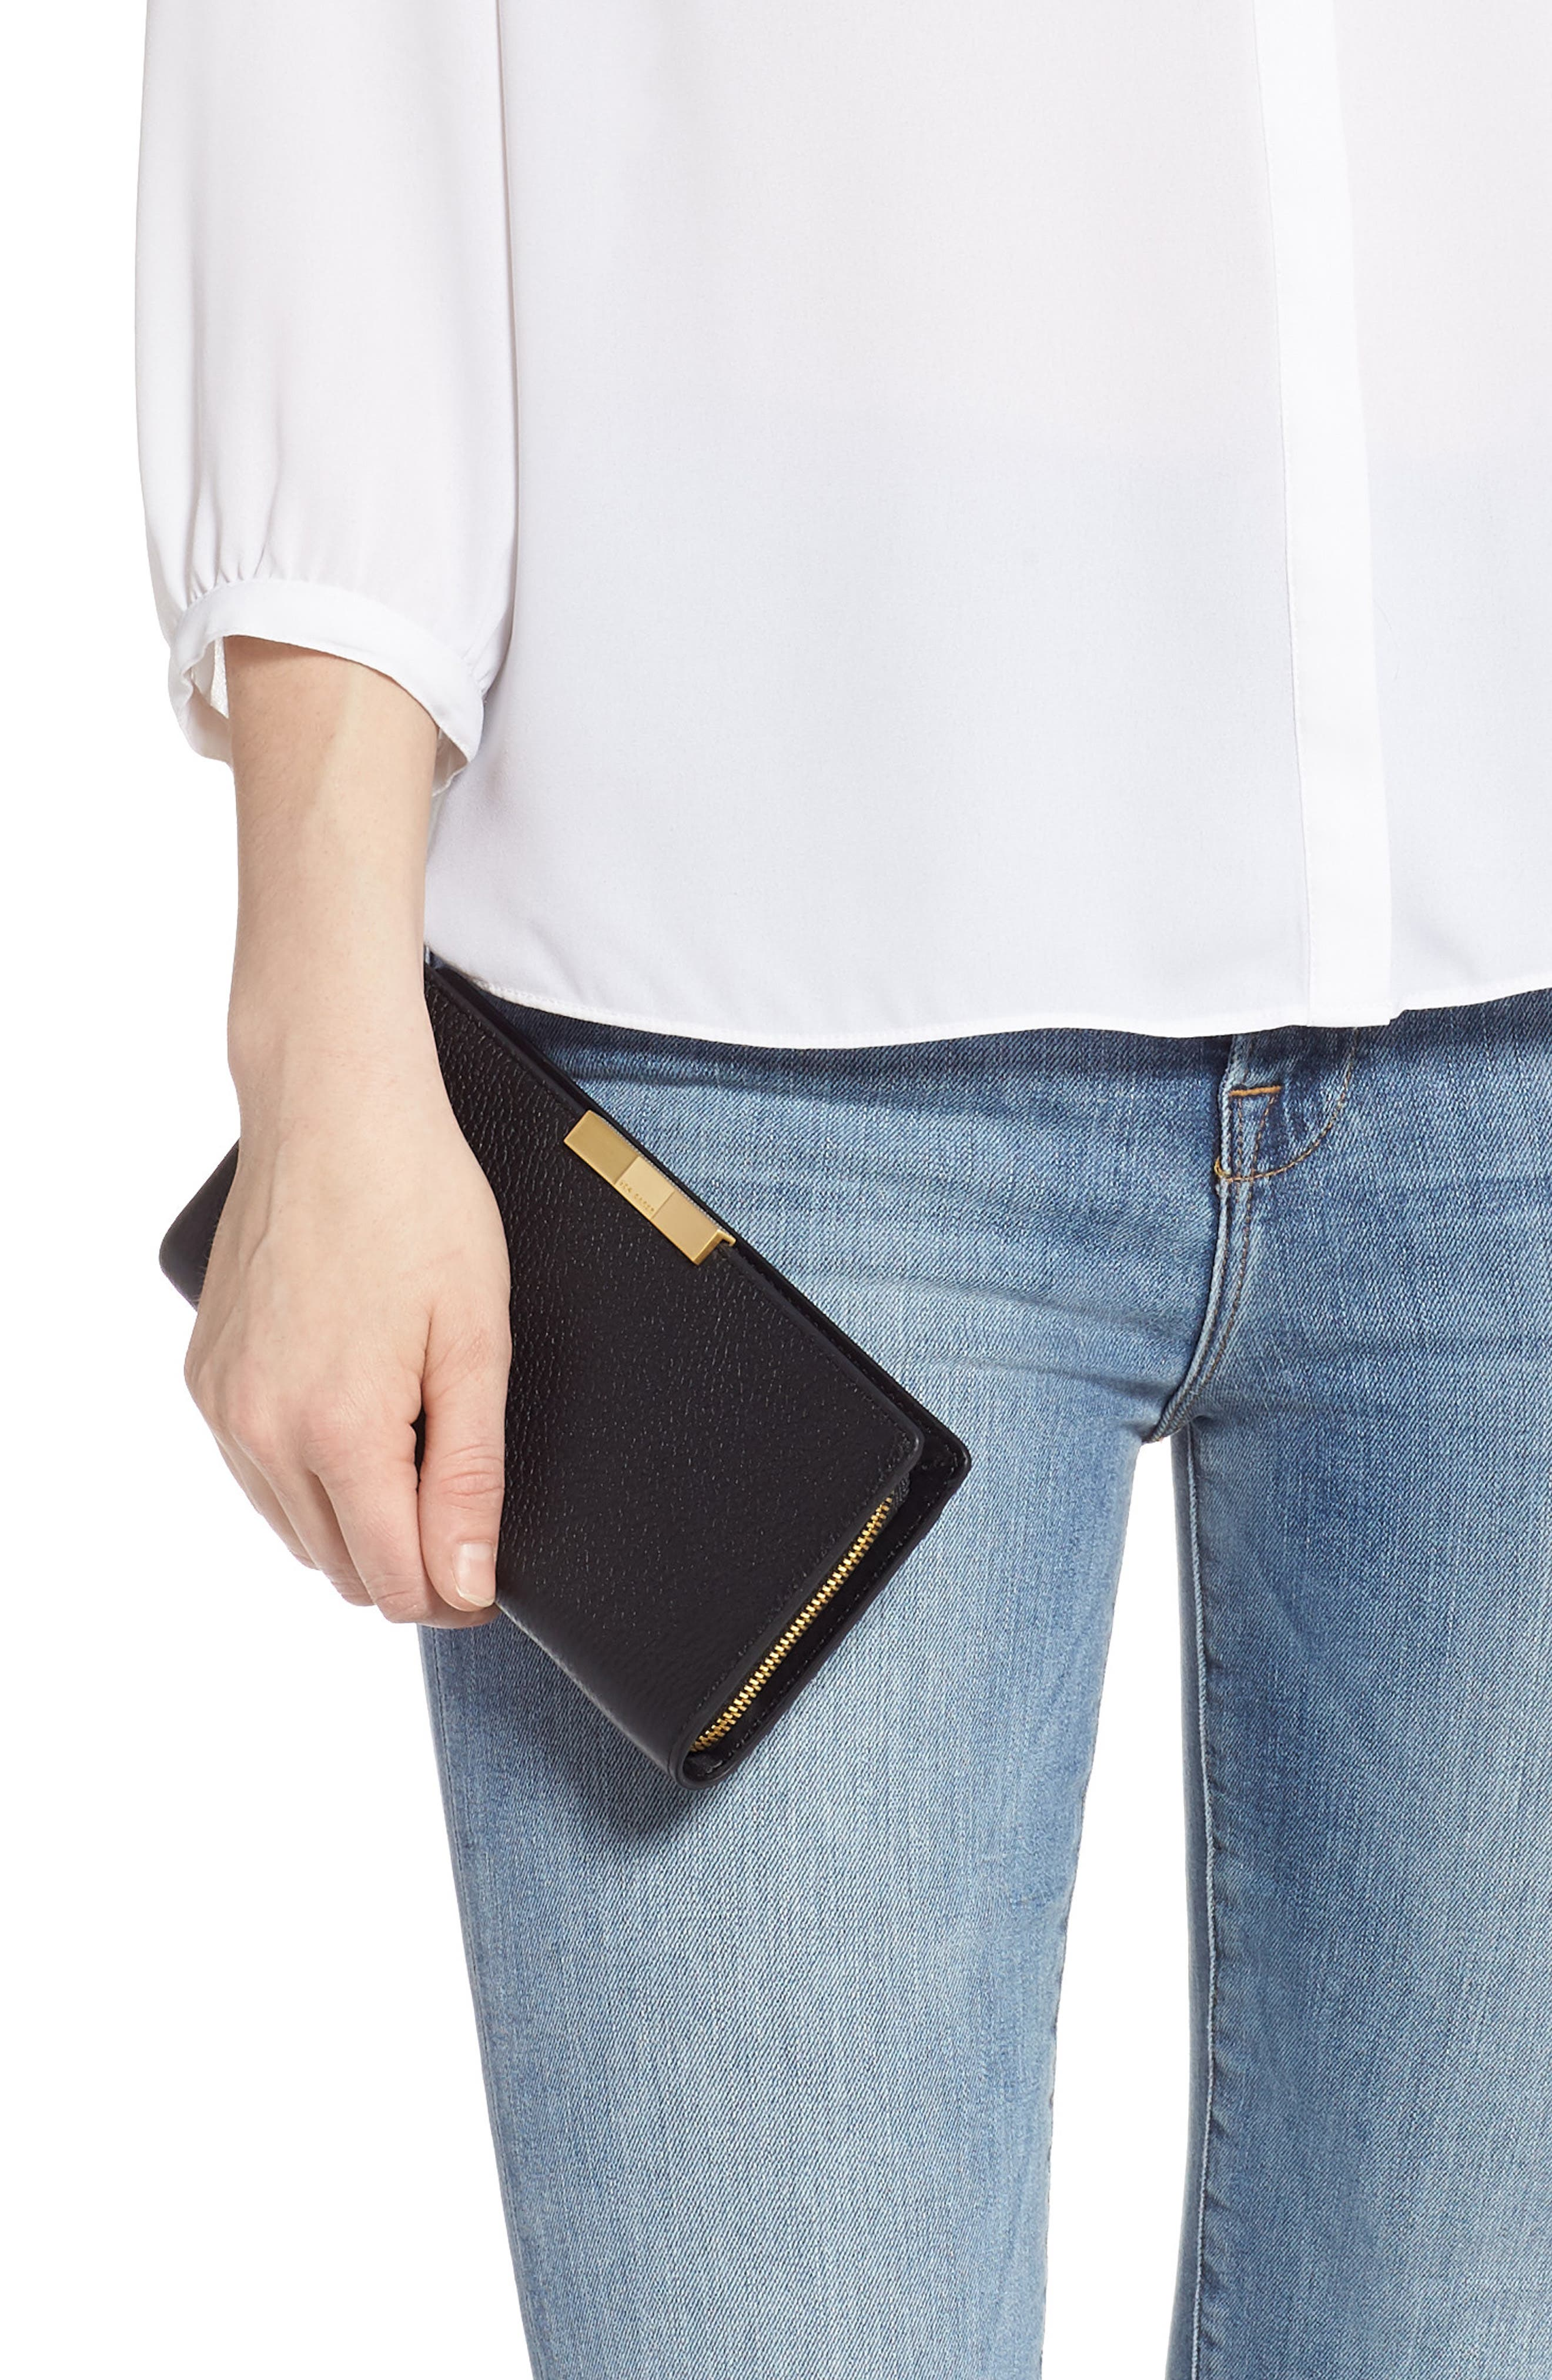 TED BAKER LONDON, Emblyn Leather Matinée Wallet, Alternate thumbnail 2, color, 001